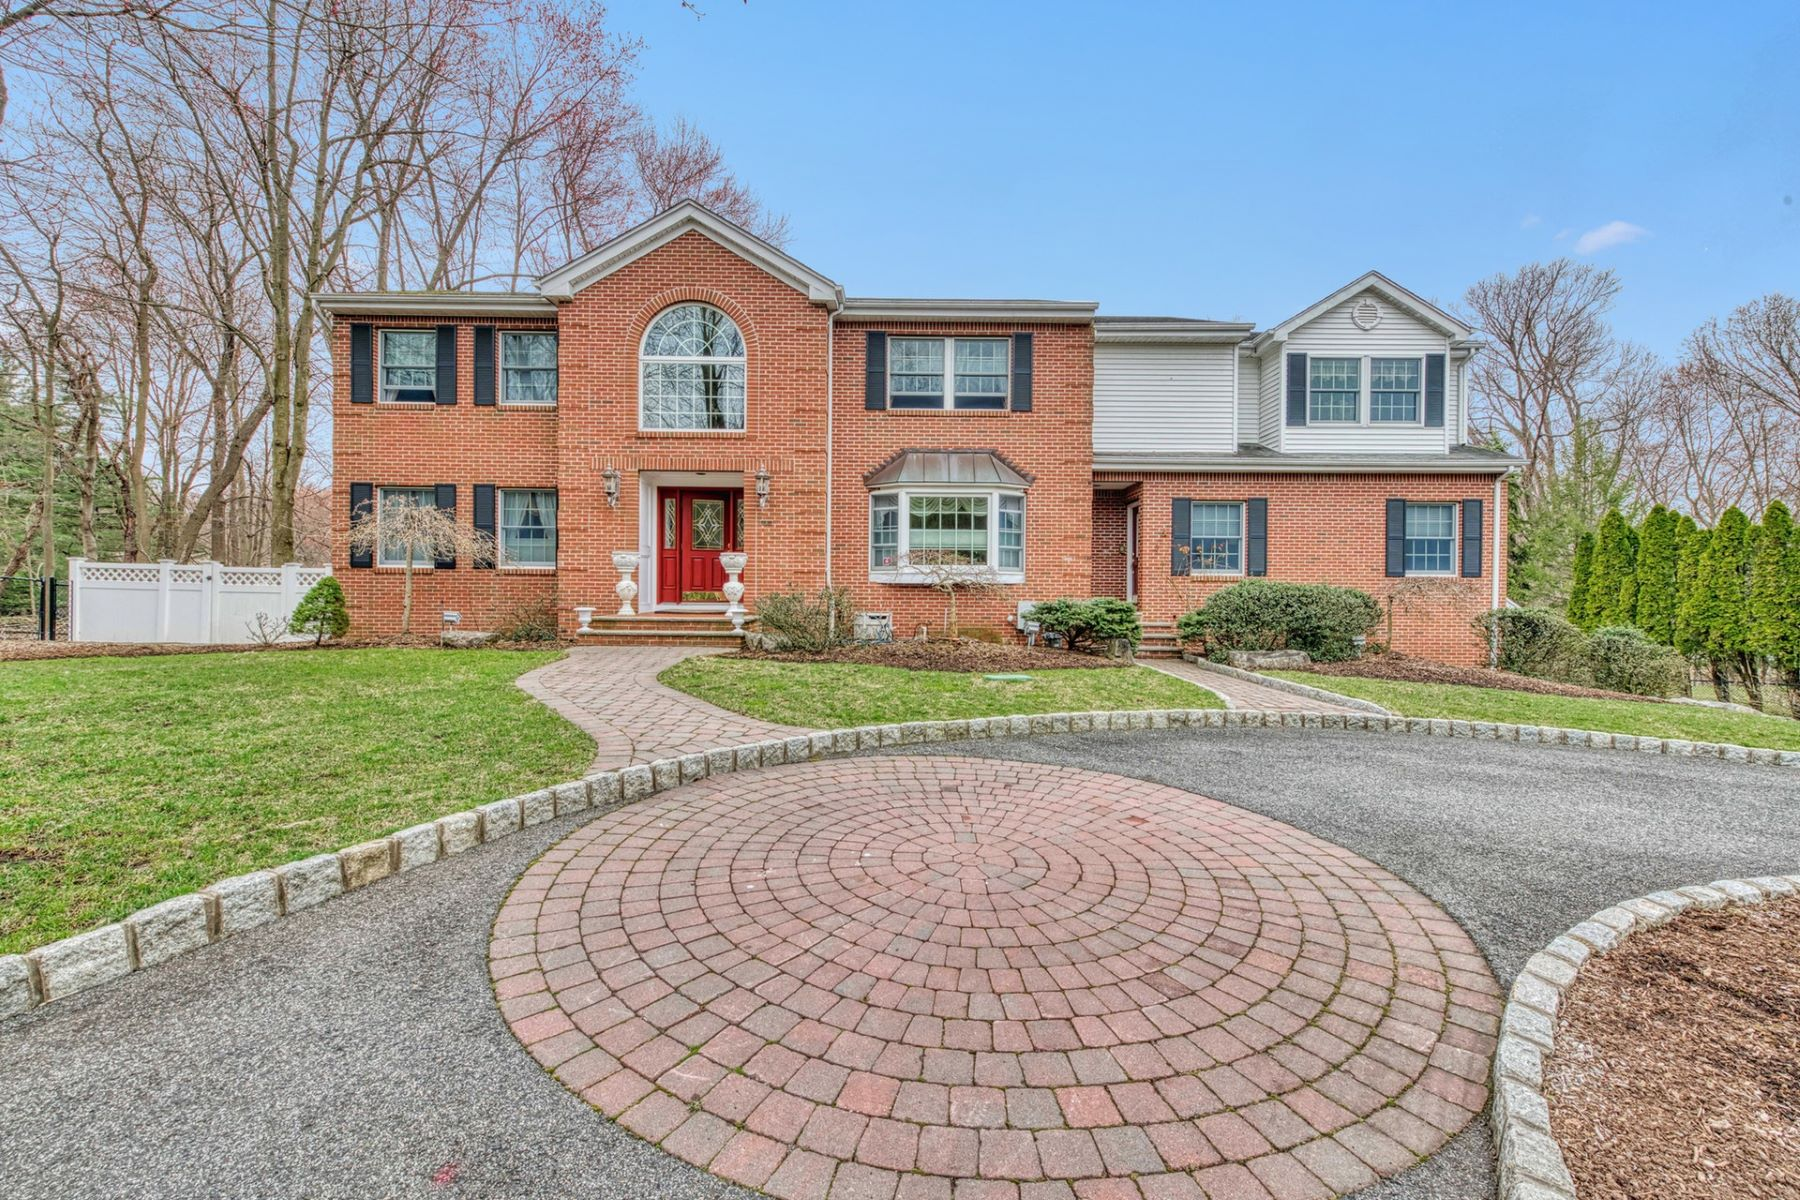 Maison unifamiliale pour l Vente à Location! Location! 6 Hampton Ridge Court, Old Tappan, New Jersey 07675 États-Unis